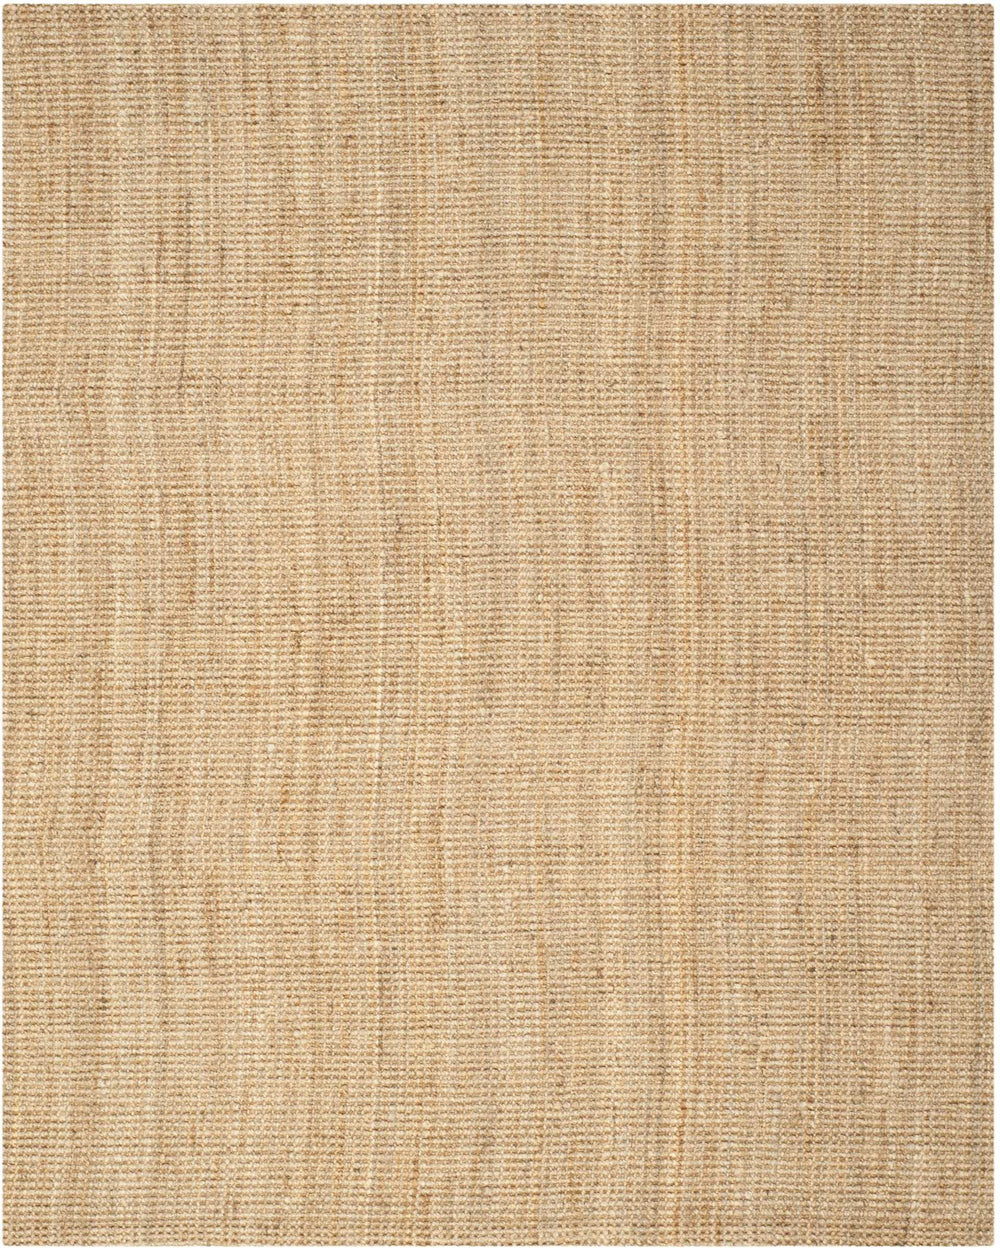 Safavieh Natural Fiber NF747 Area Rug